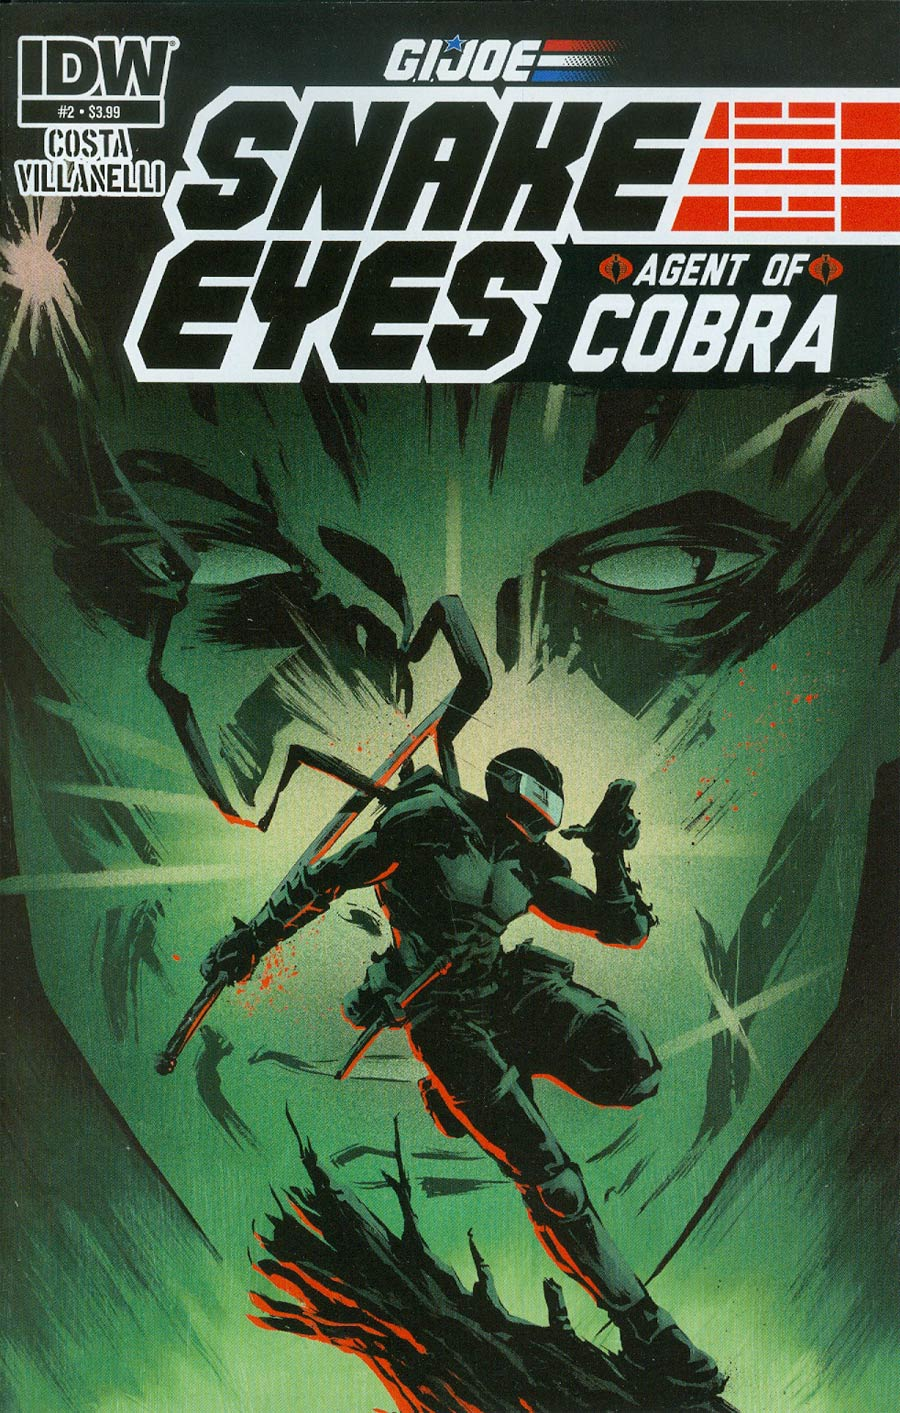 GI Joe Snake Eyes Agent Of Cobra #2 Cover A Regular Paolo Villanelli Cover